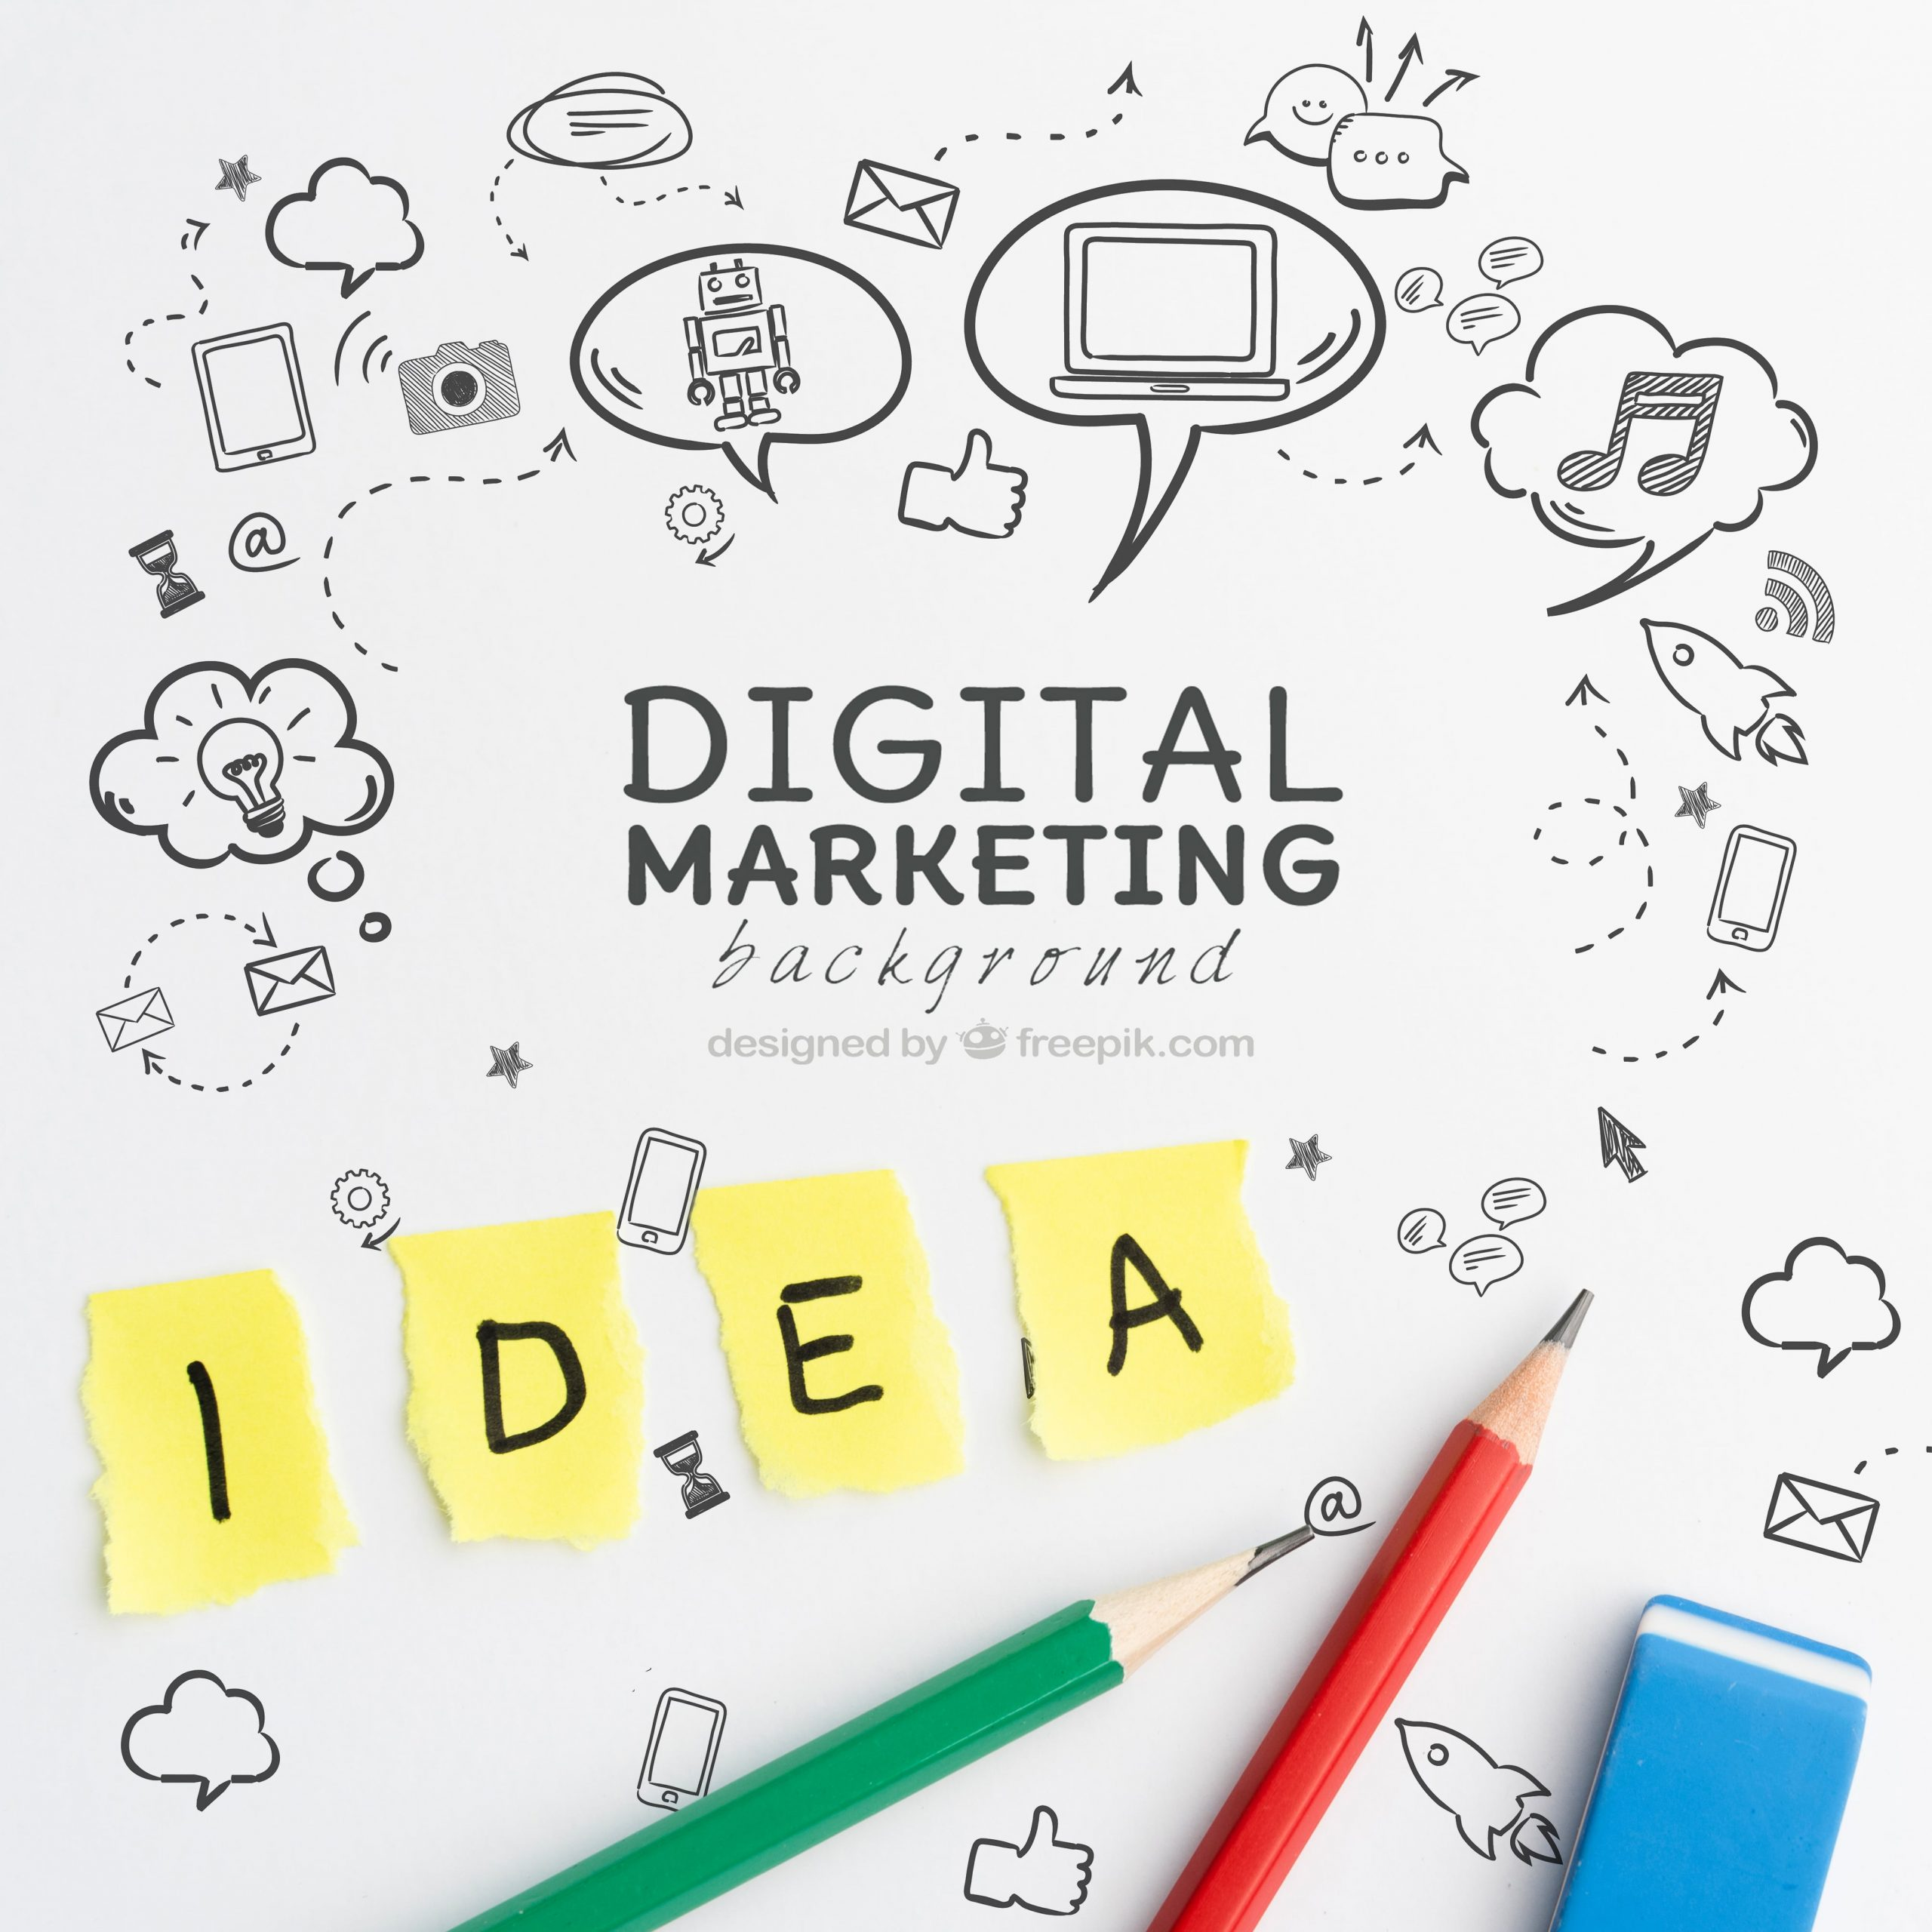 digital marketing stategy for small business